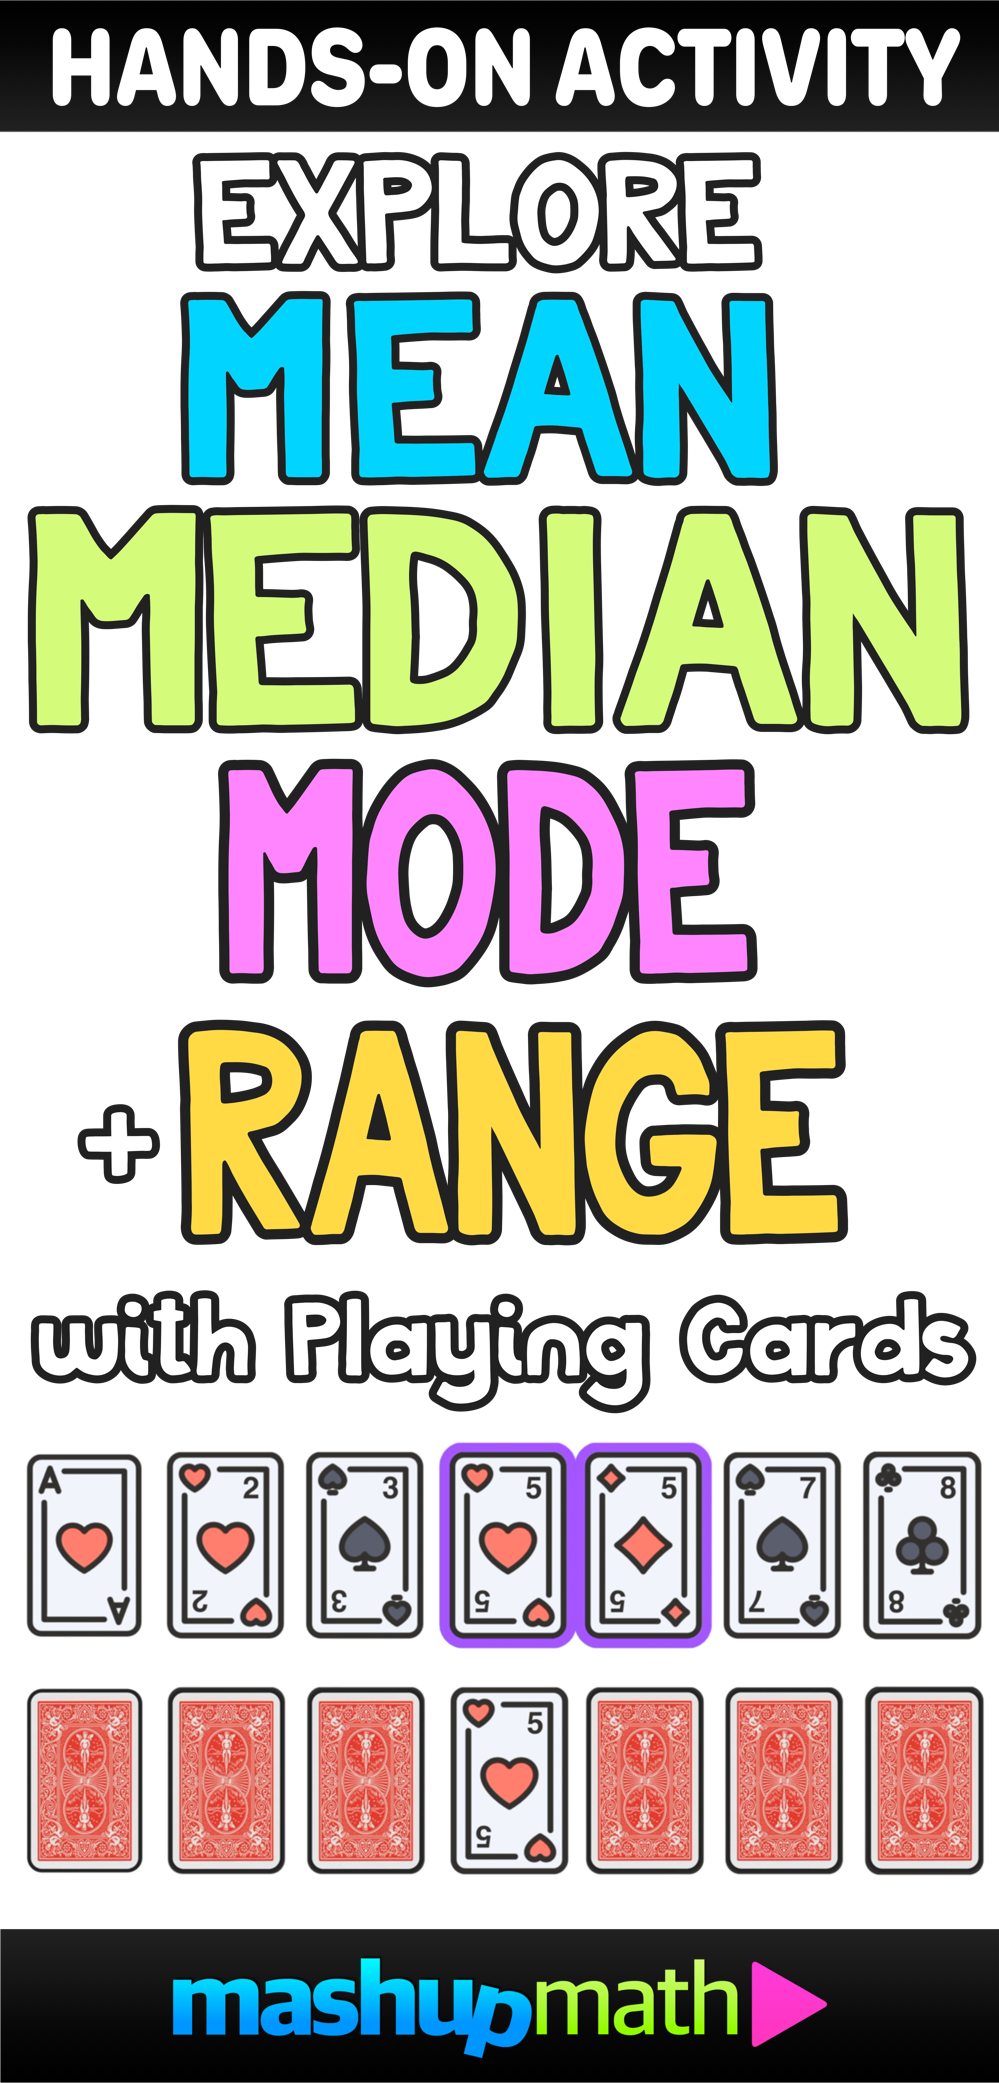 Math Youtube: Check Out This Awesome Mean, Median, And Mode Activity